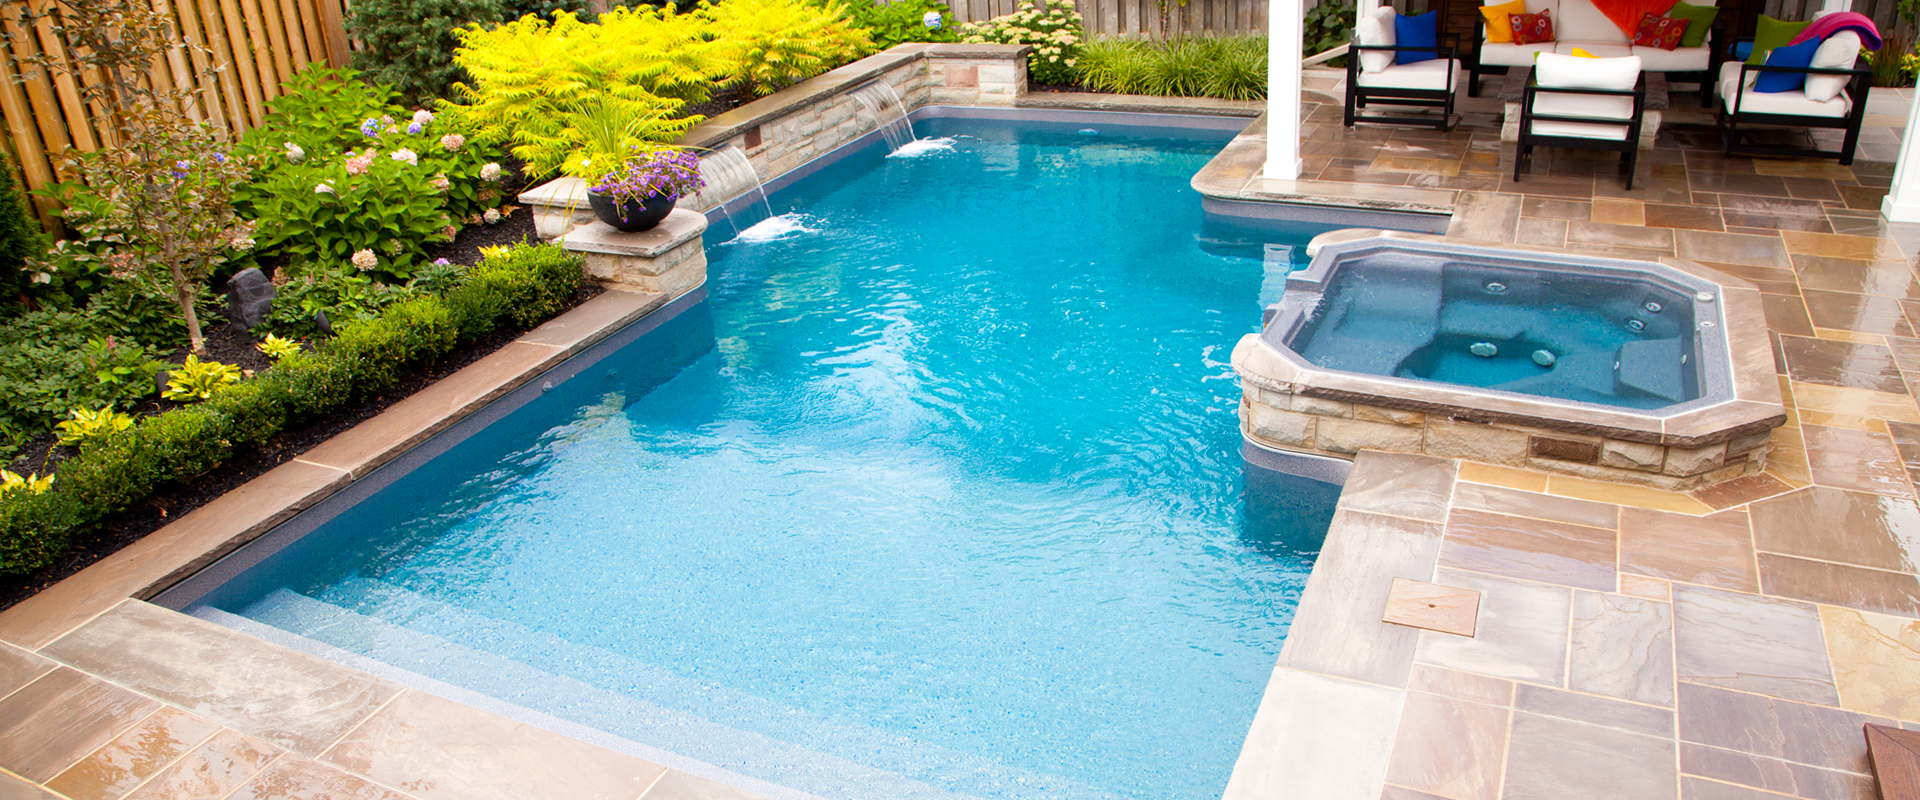 Inground onground and above ground pools pioneer pools for How to design a pool